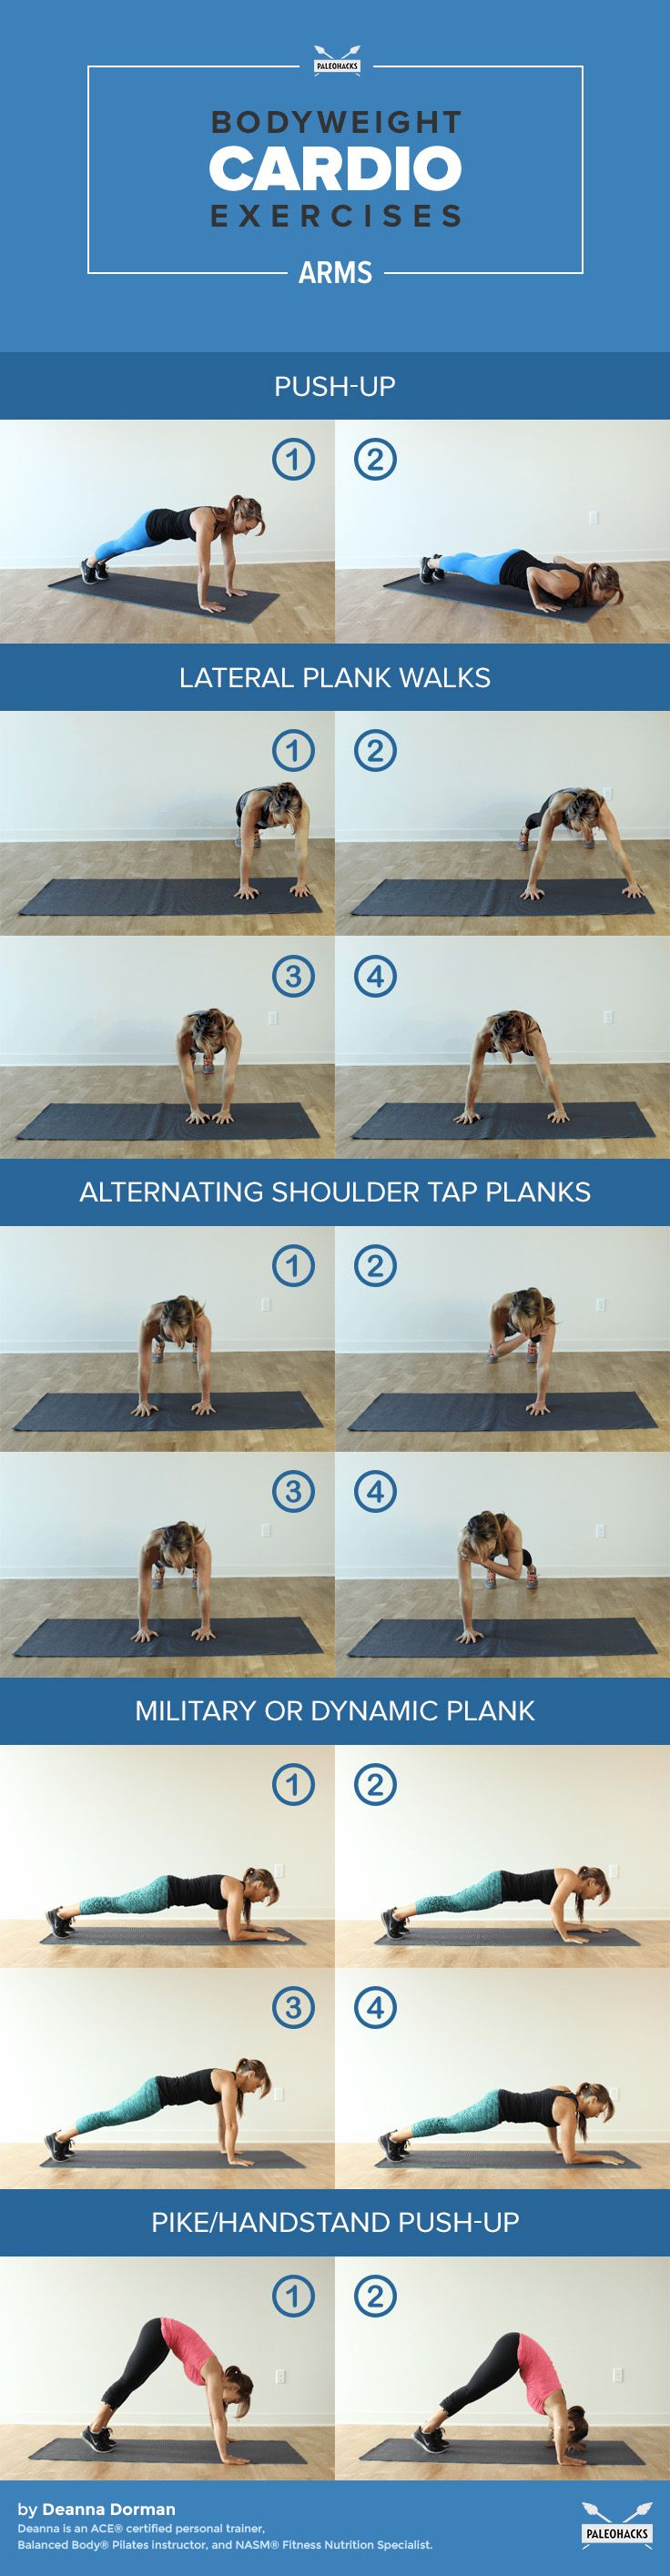 Arm Exercises - Lots of body weight exercised, no equipment needed